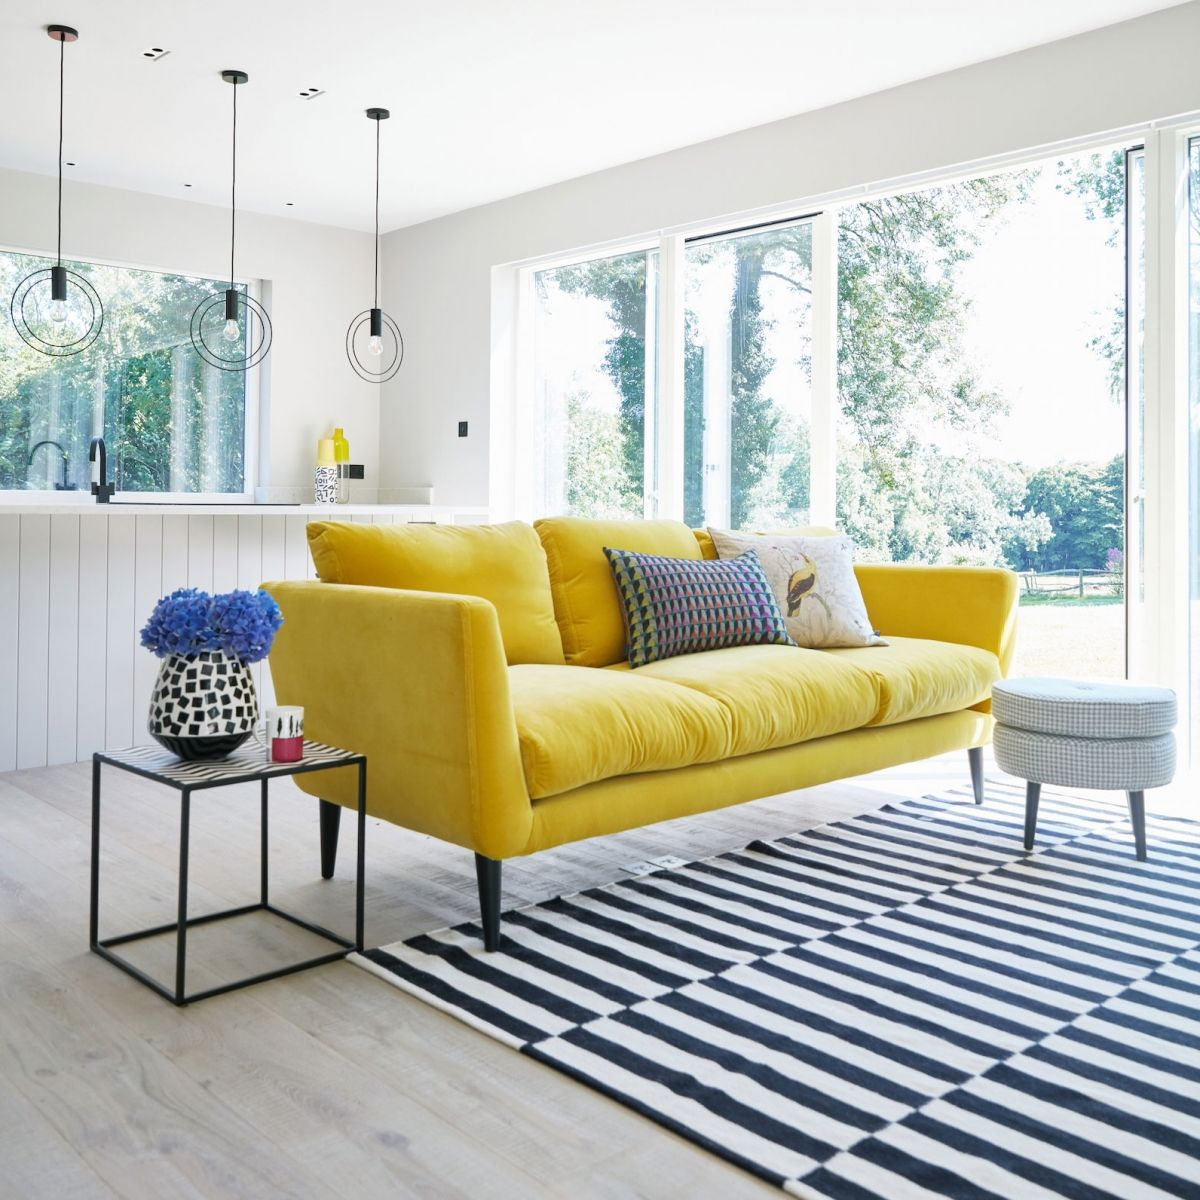 canaray yellow velvet sofa adds a pop of colour to an all grey